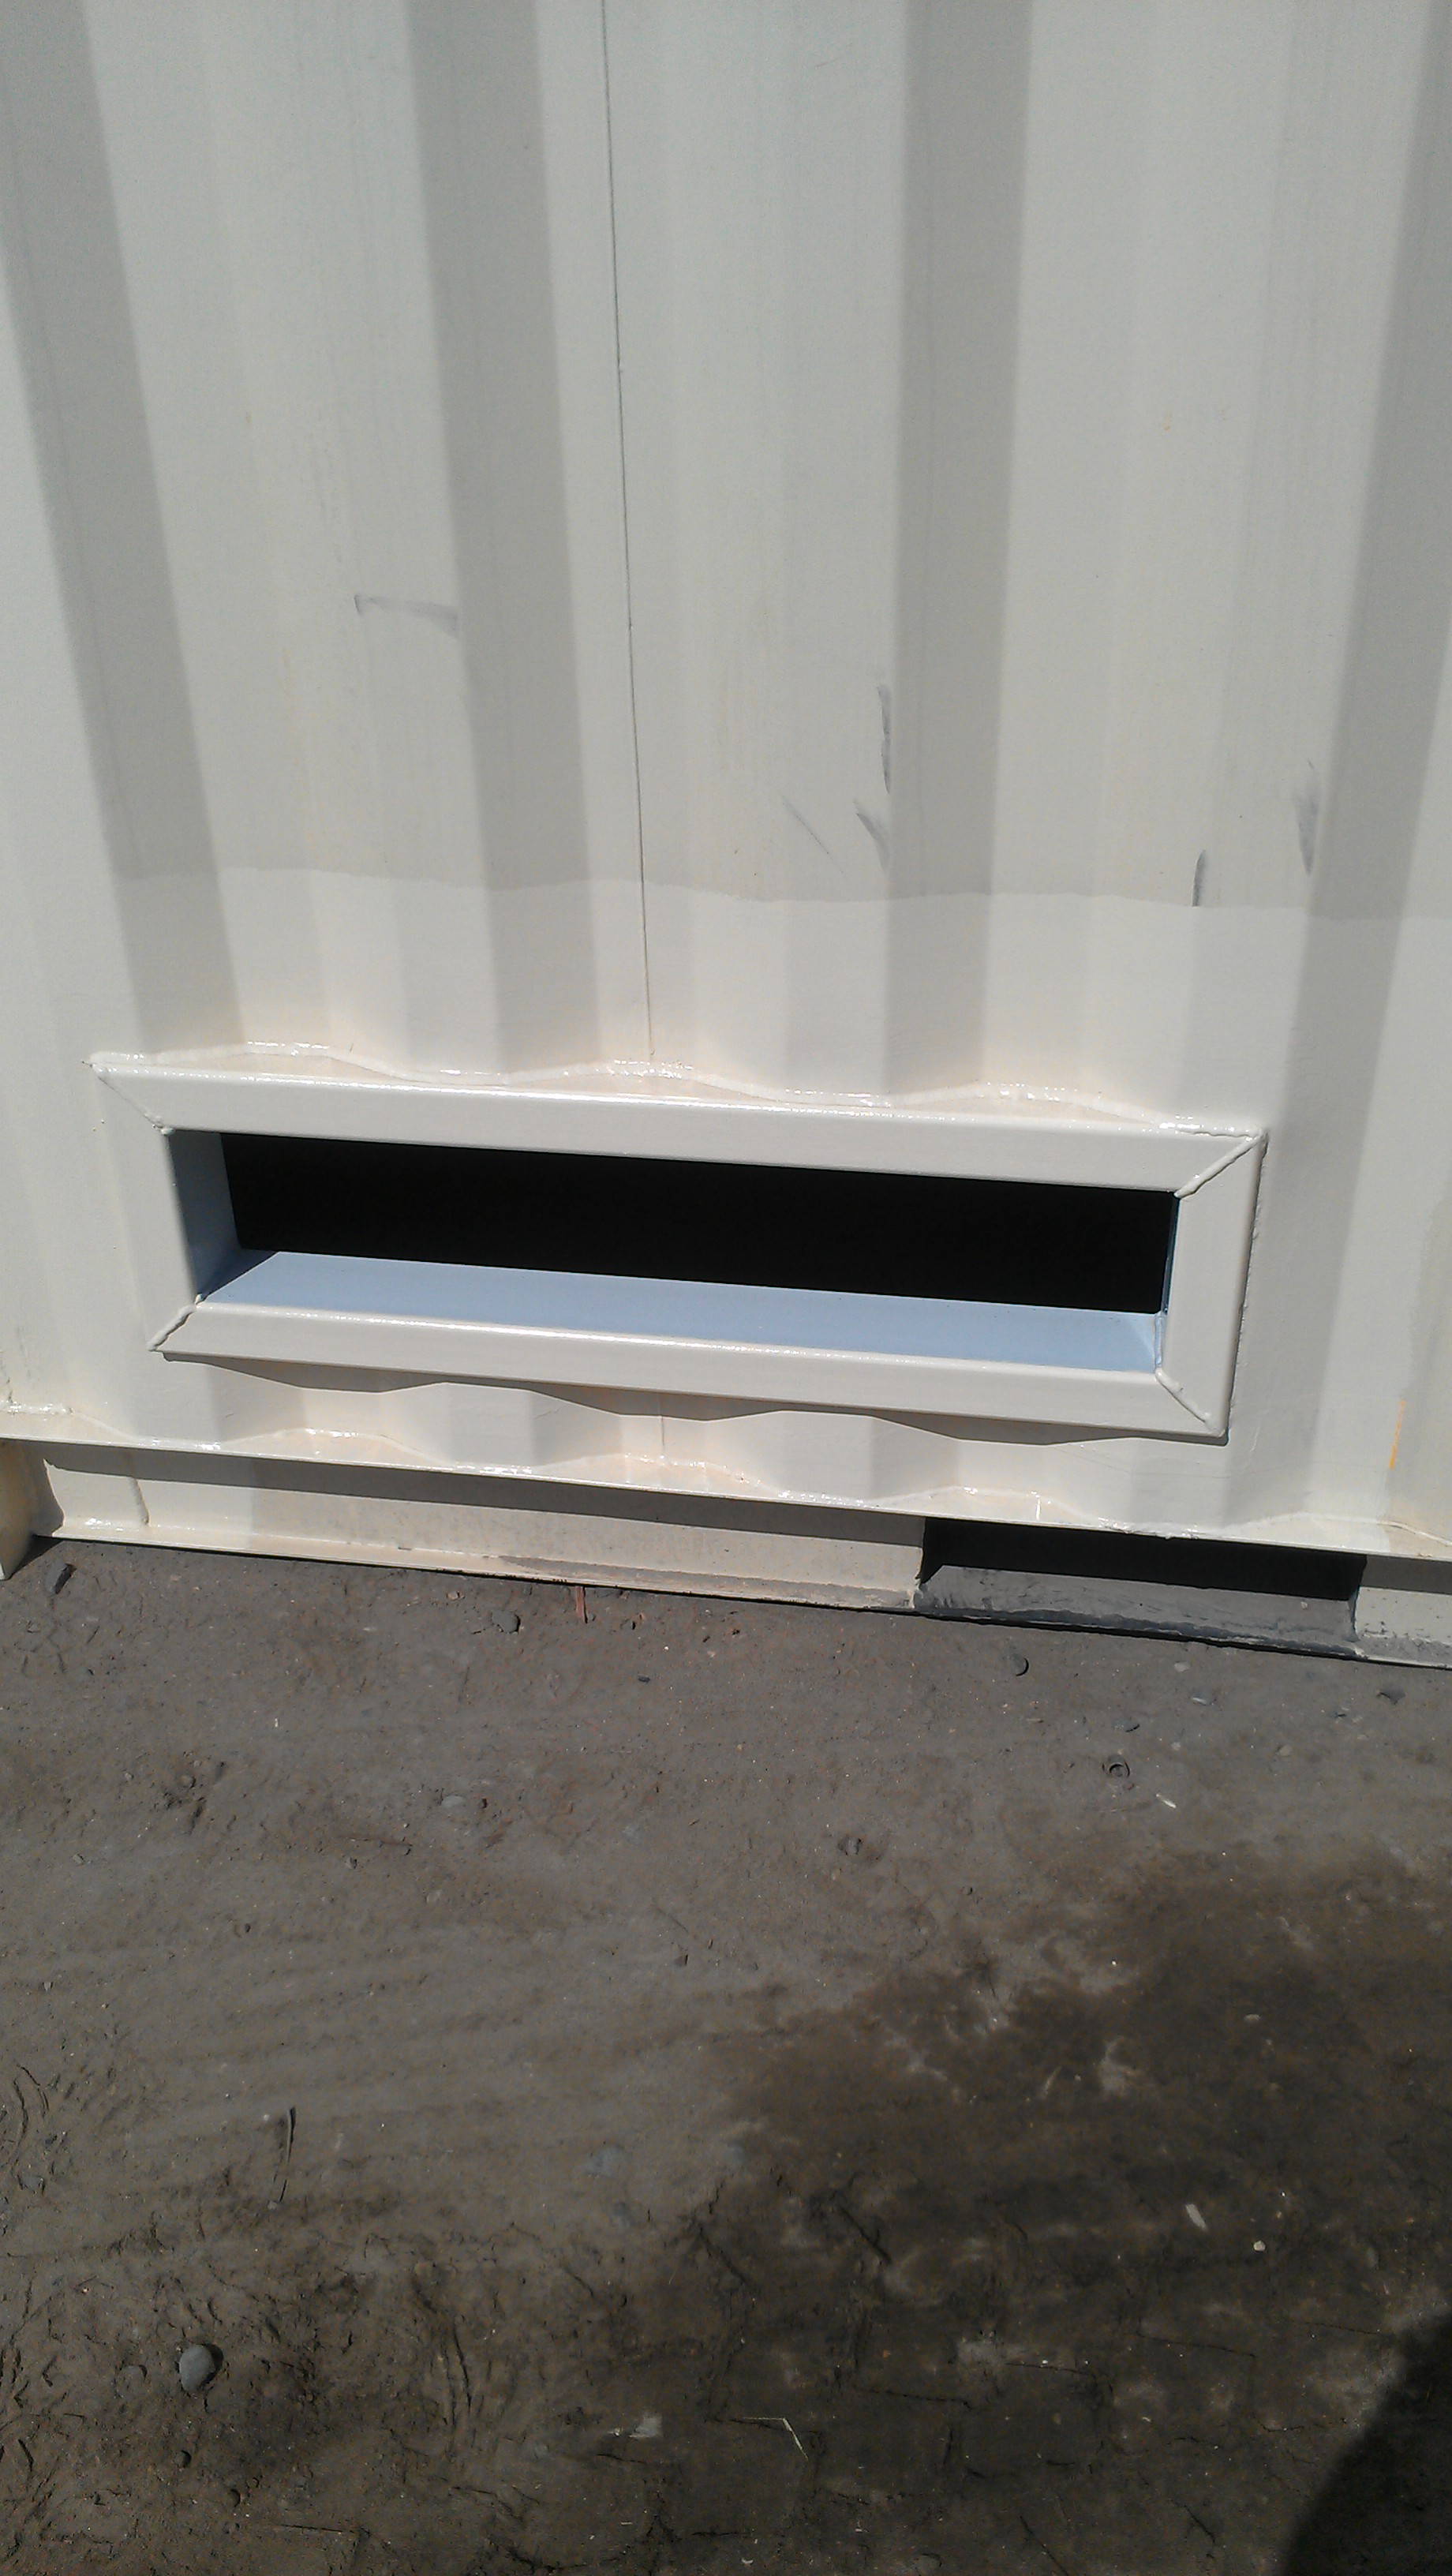 Custom-sized hole in side of conatiner - outside